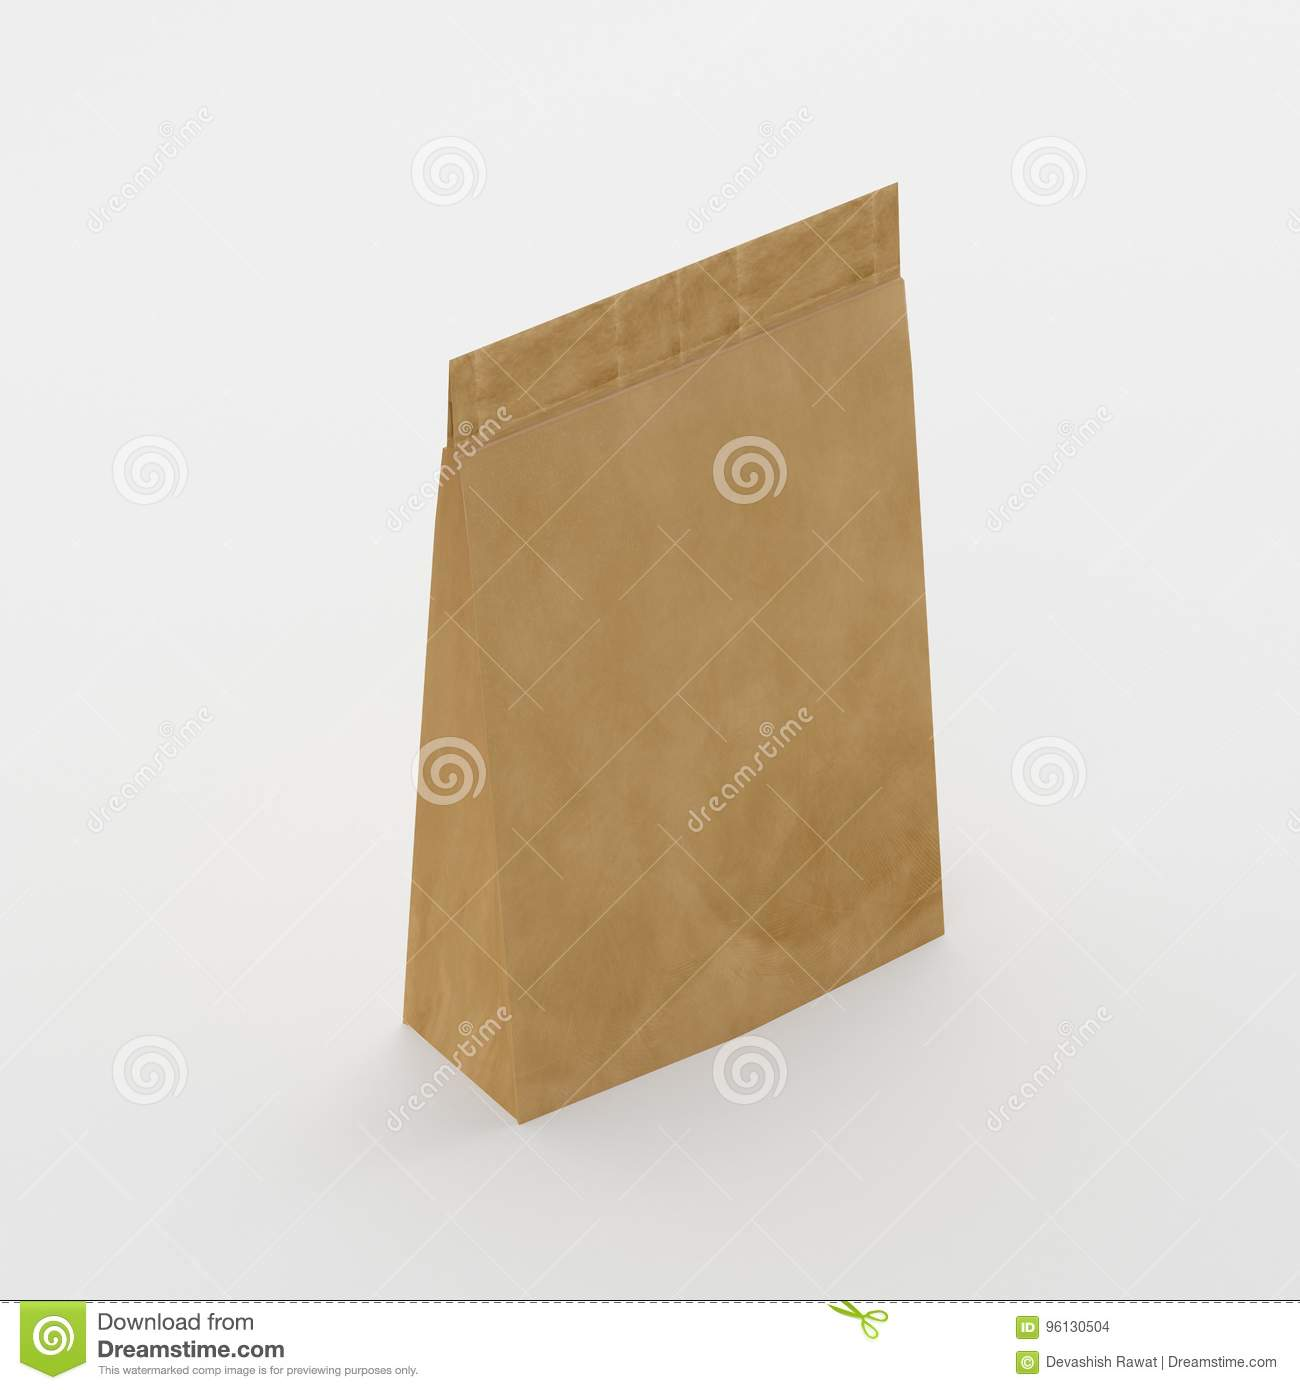 Bag Cake Environment Food Lunch Paper Recycled Brown Packaging